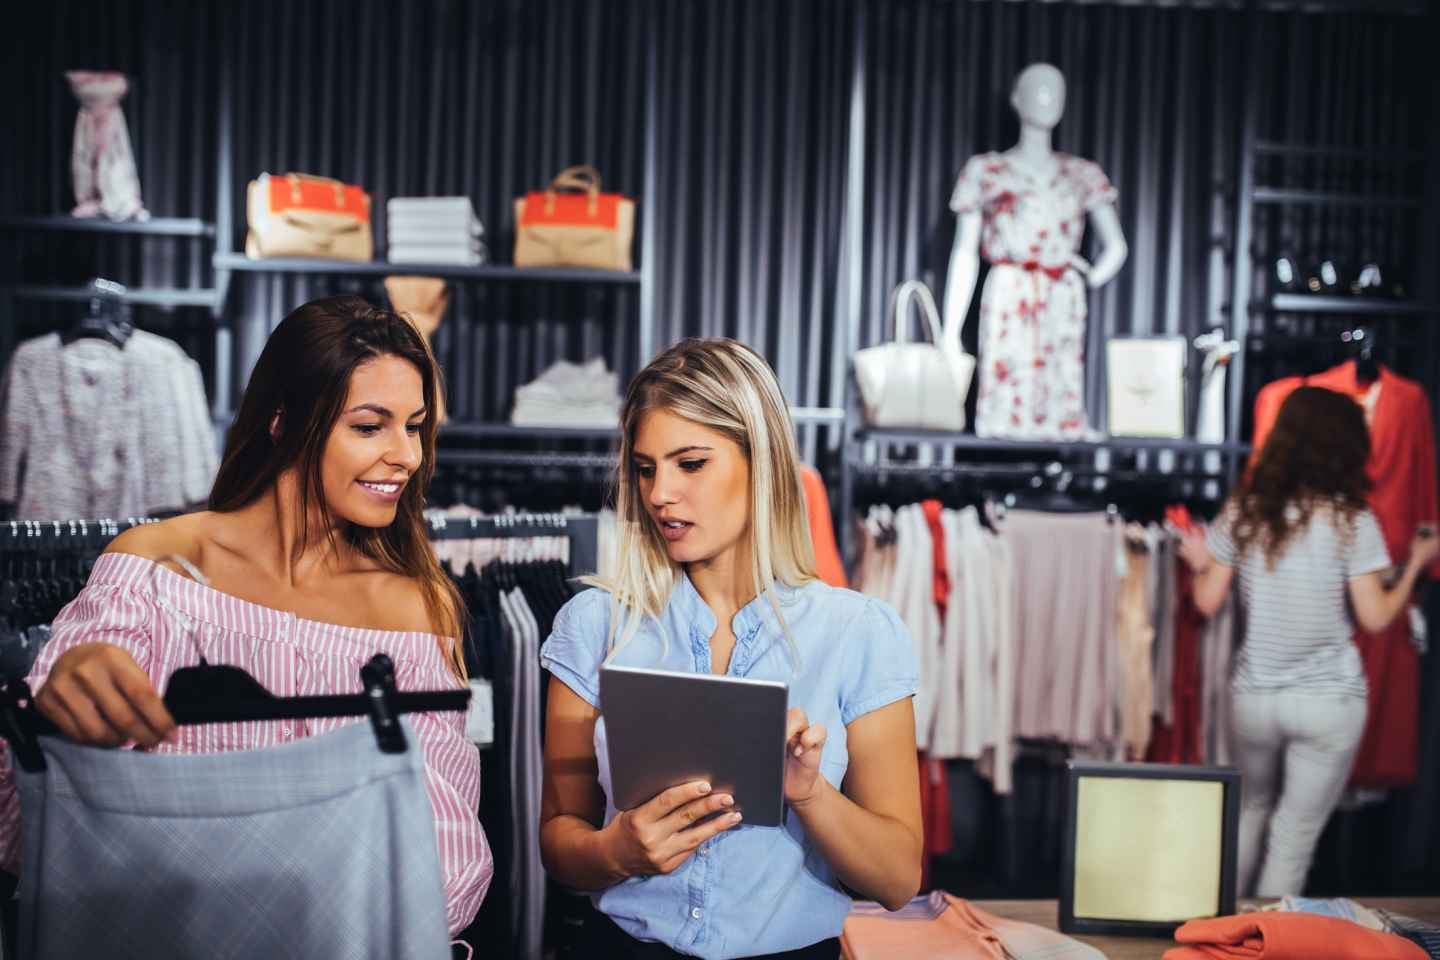 The best mobile retail apps are proven to drive retail revenue growth. How to build mobile retail apps that deliver and stand out against the competition.